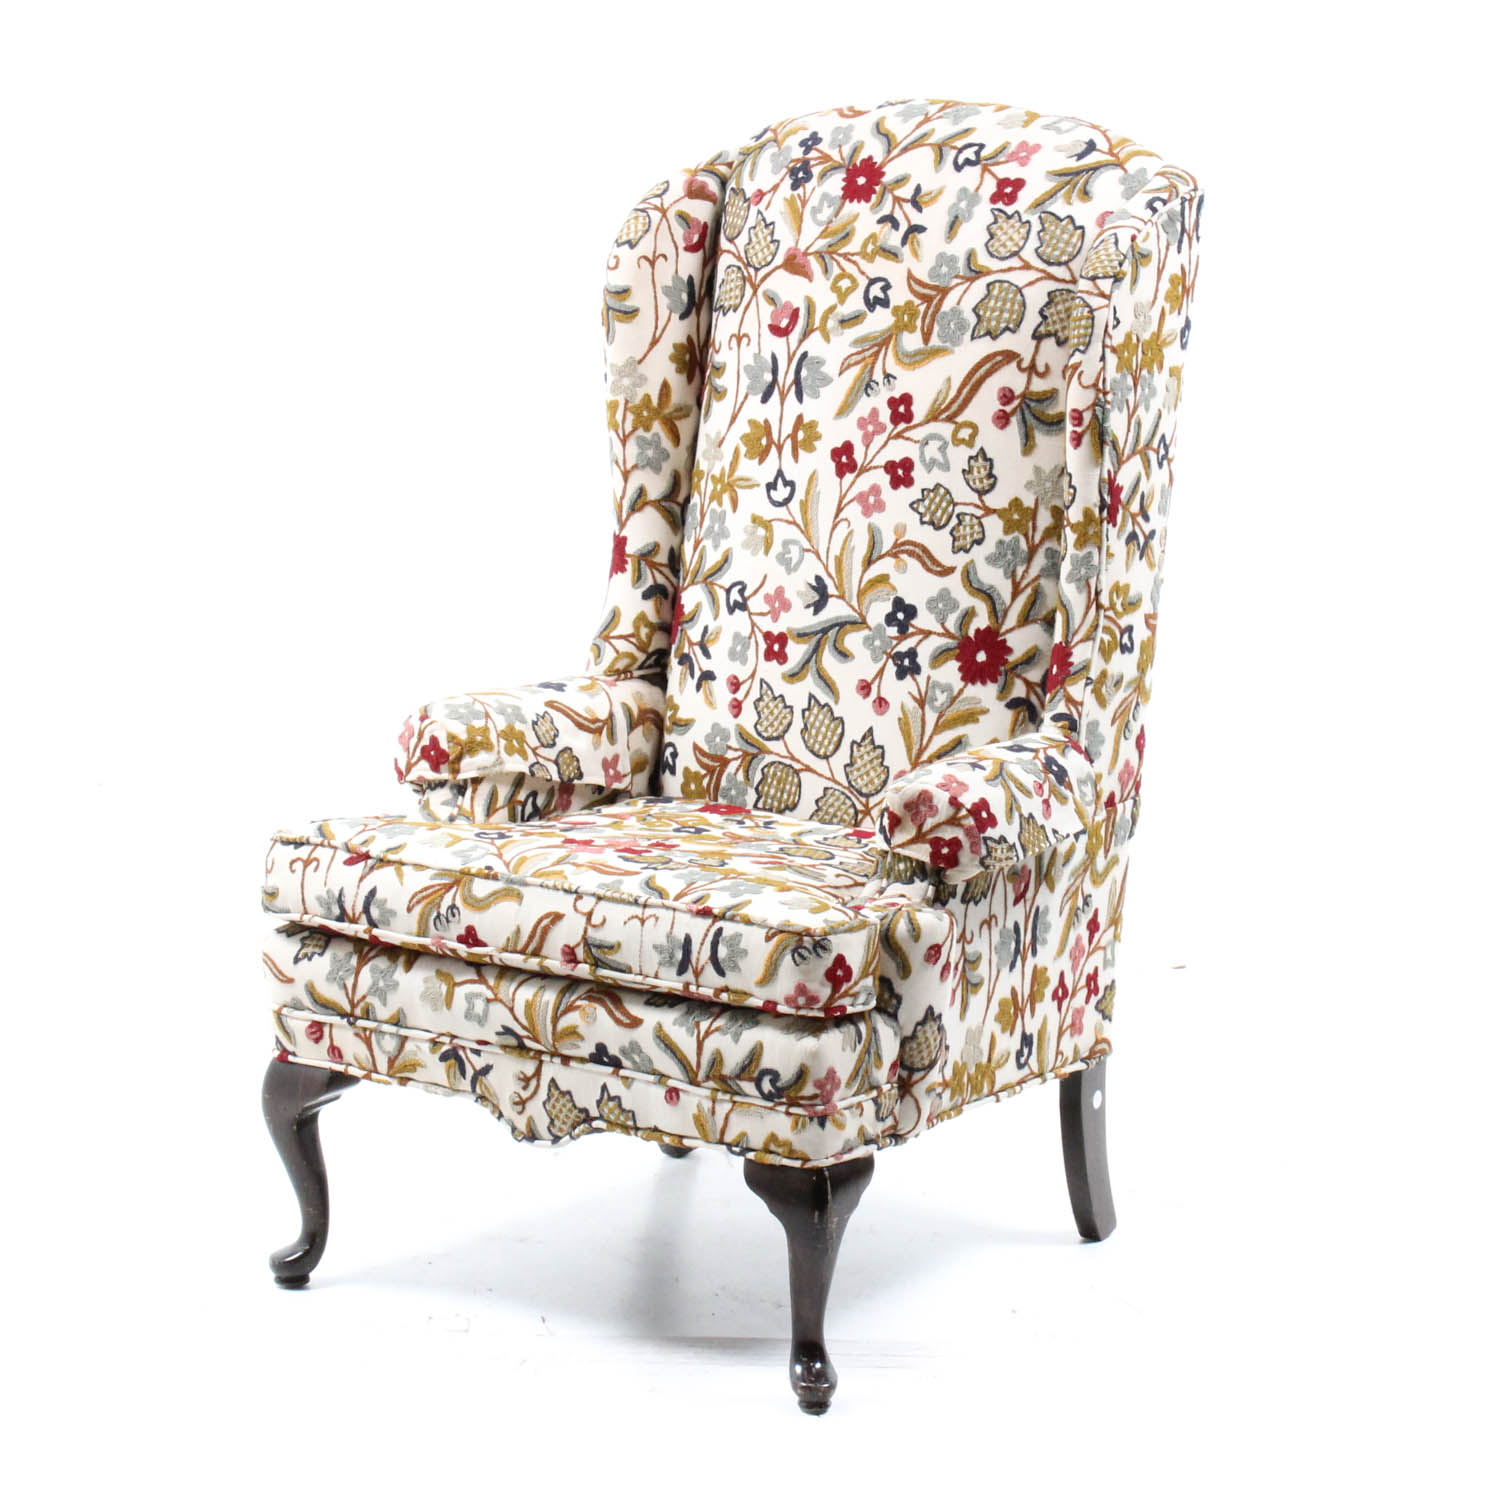 ethan allen wingback chairs adirondack table and chair set crewel upholstered ebth